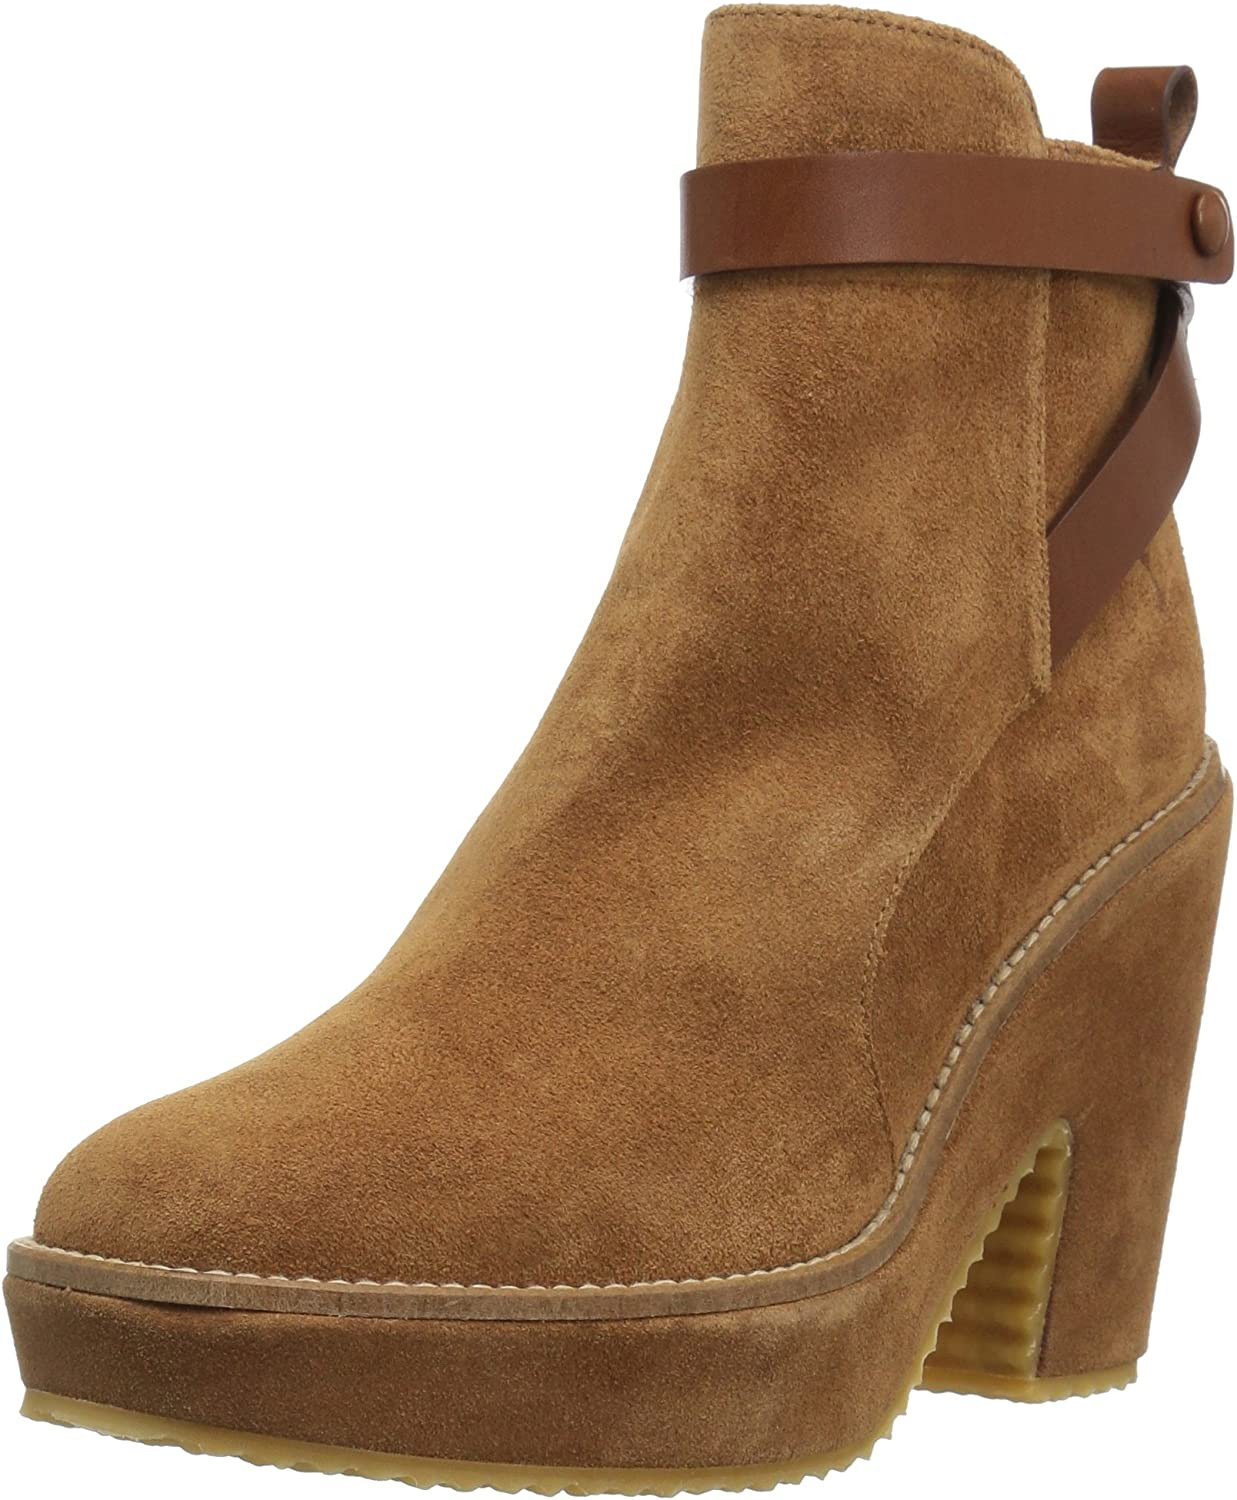 Finally popular brand Castaner Women's Free shipping on posting reviews Tropea Boot Ankle